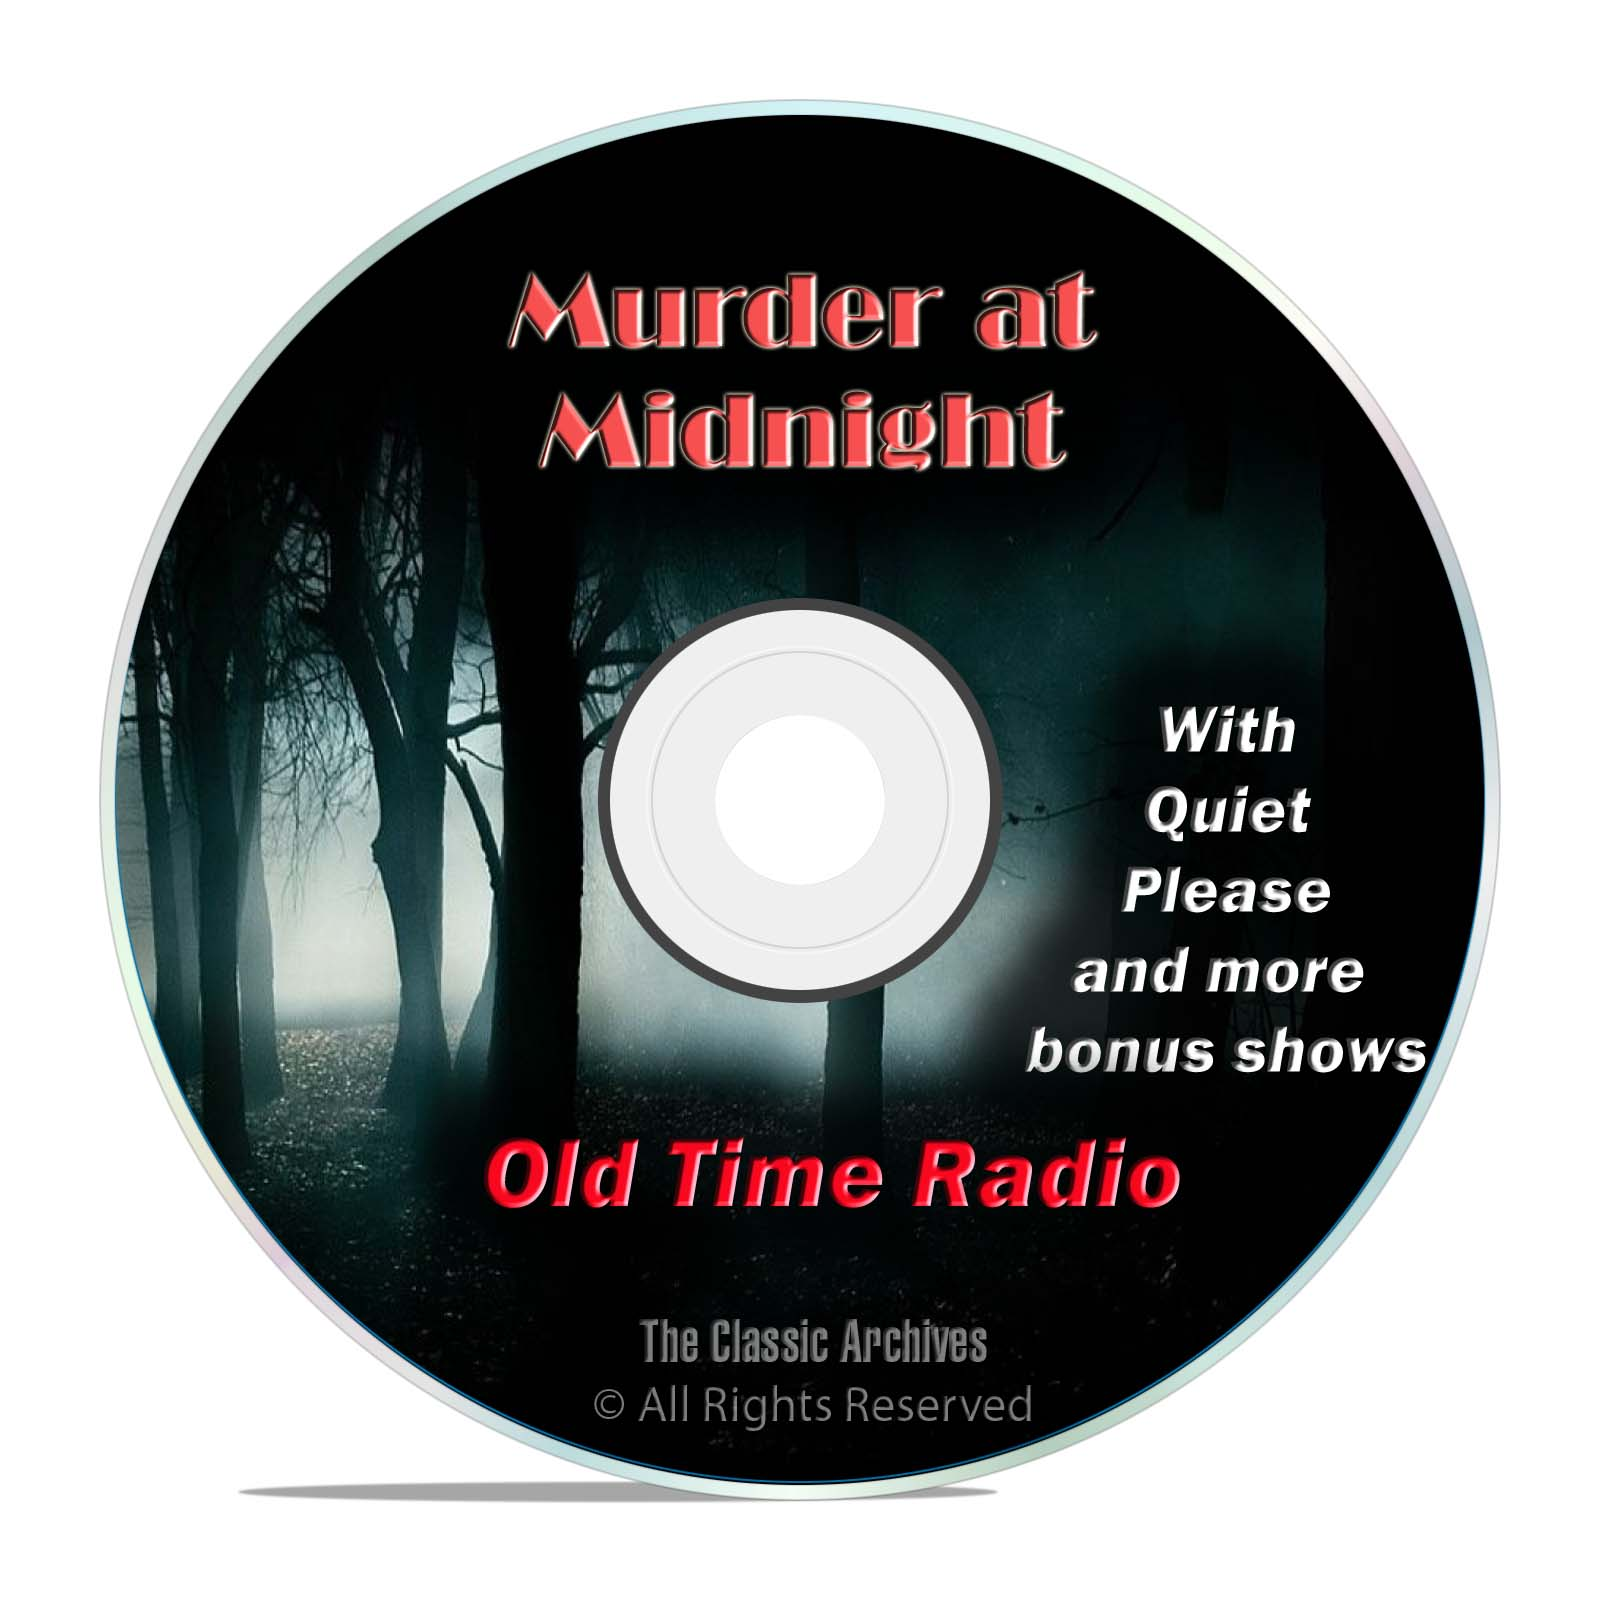 Murder at Midnight, 481 Thriller Horror, Old Time Radio Shows, OTR, DVD